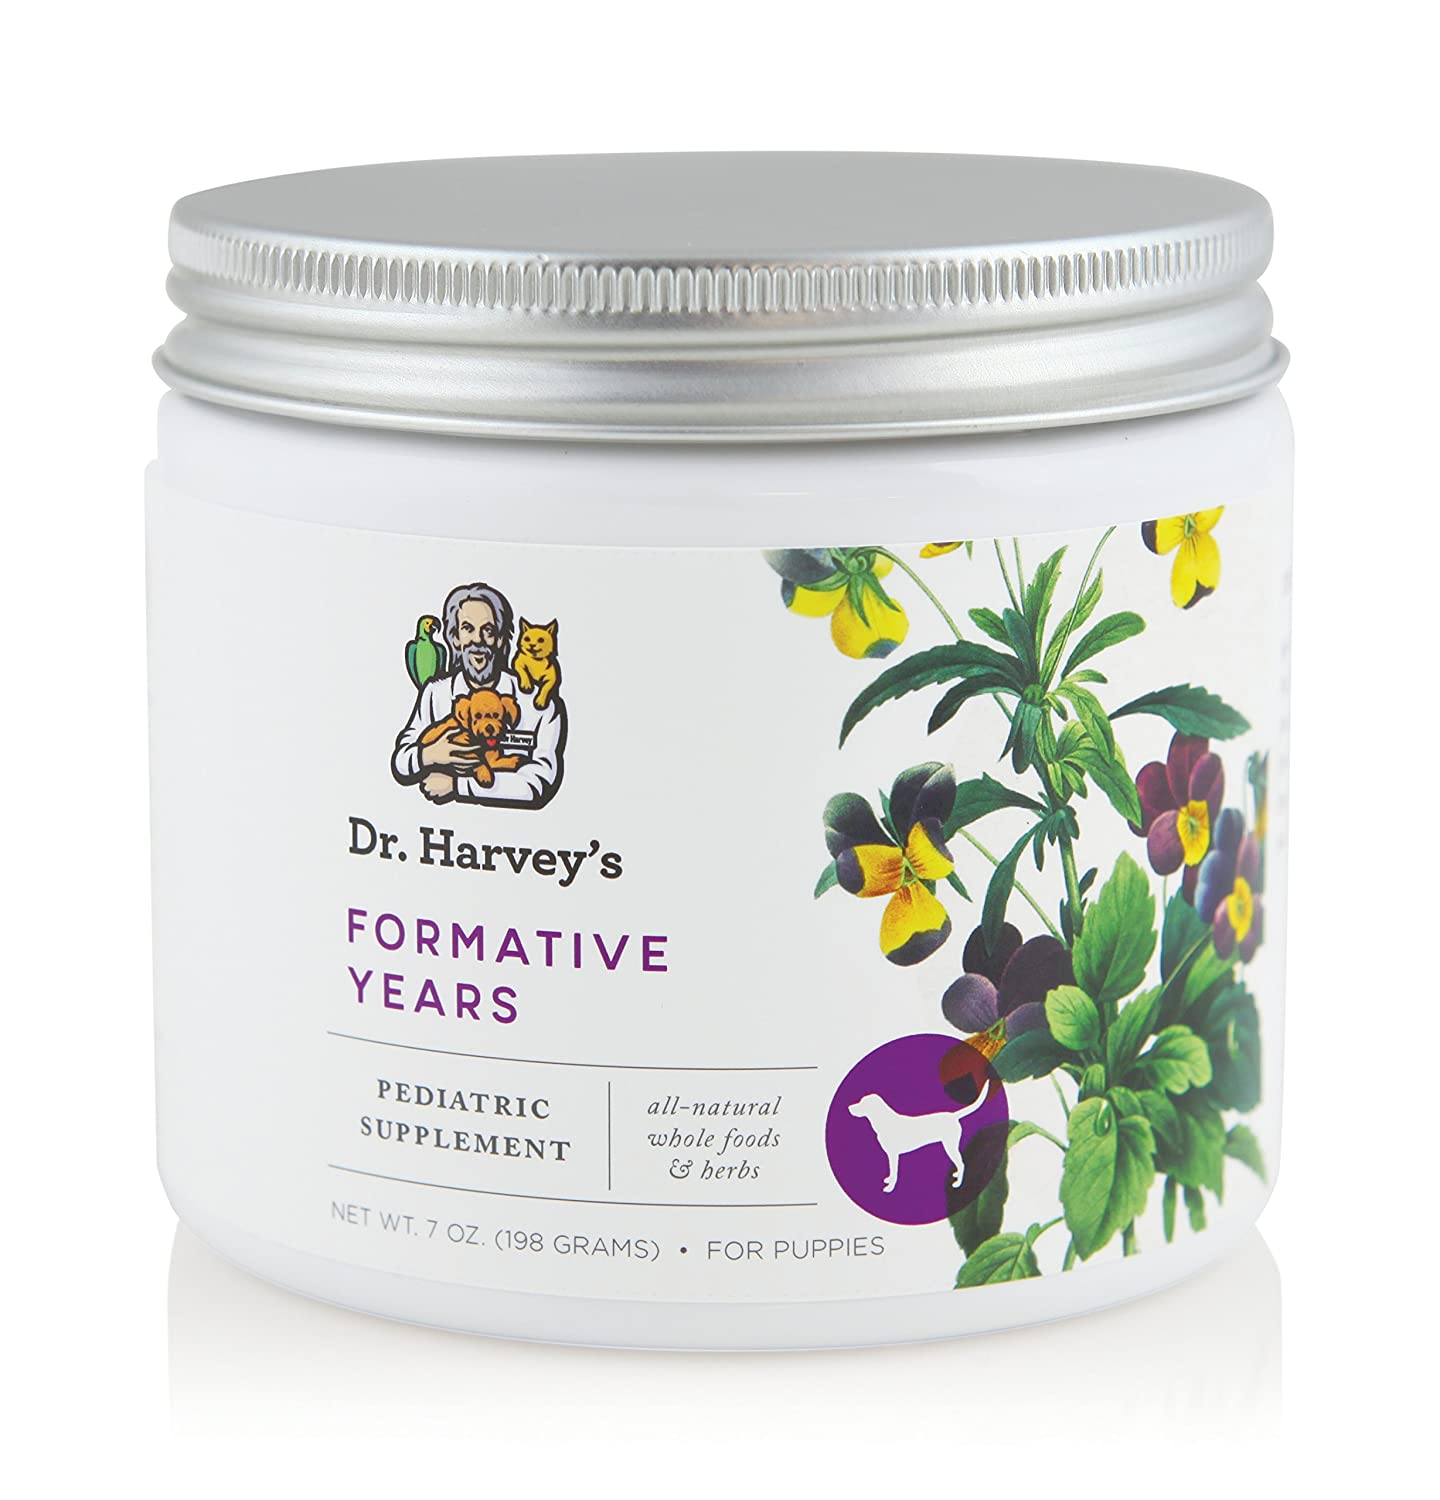 Dr. Harvey's 1 Piece Formative Years Herbal Supplement for Puppies, 7 oz